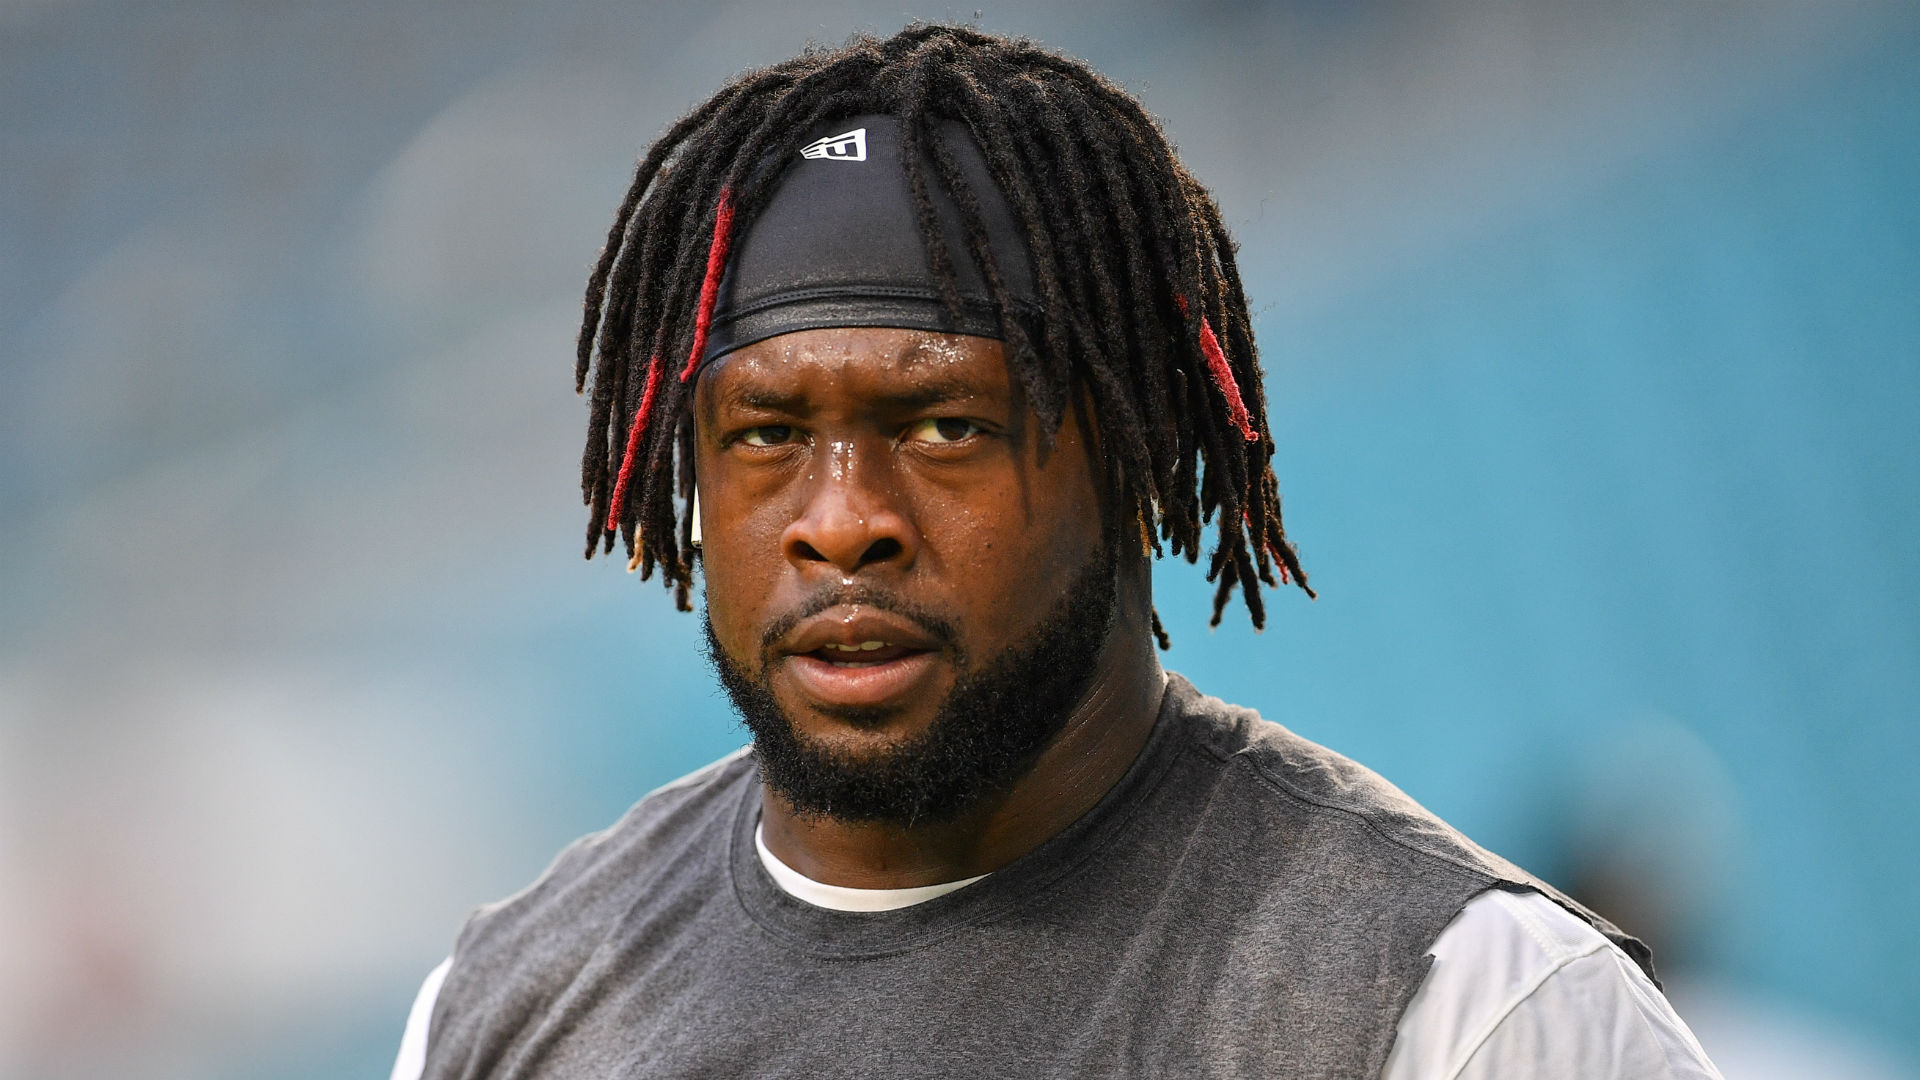 Cowboys release Gerald McCoy via injury waiver one day after he tears quad 1